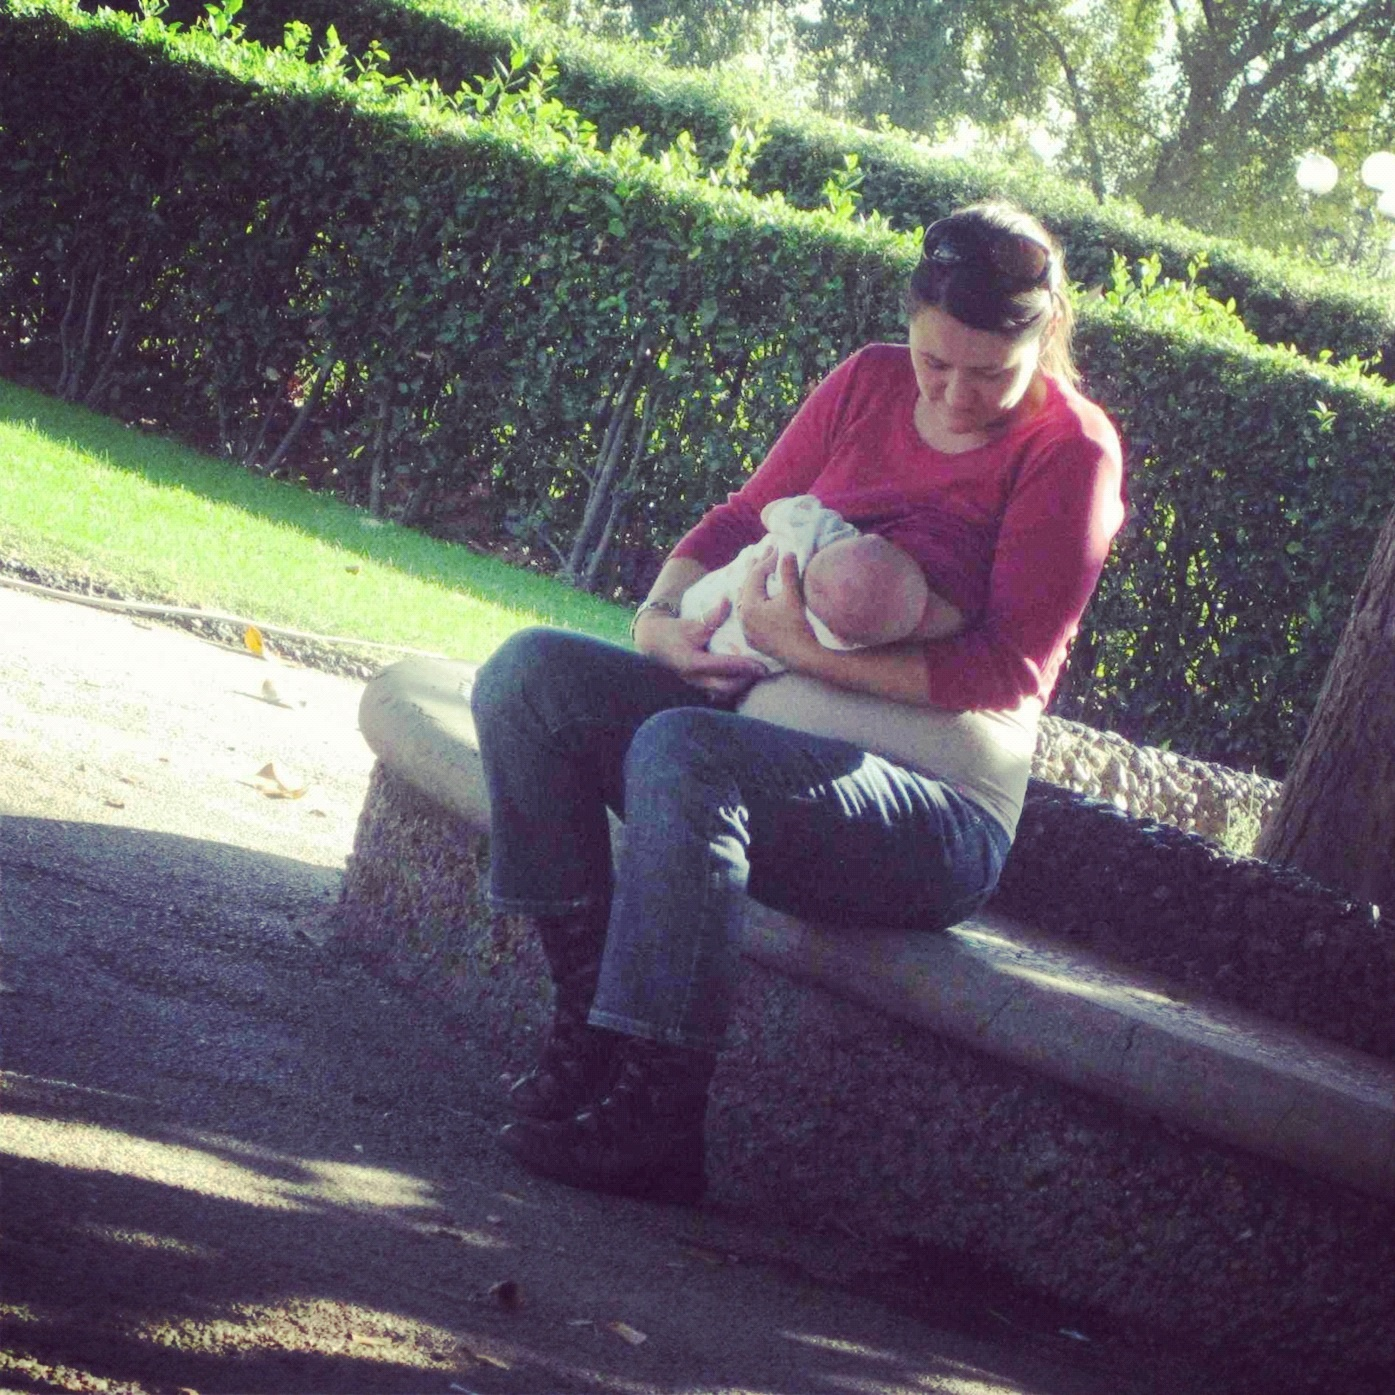 Me and Peanut in Cascine Park